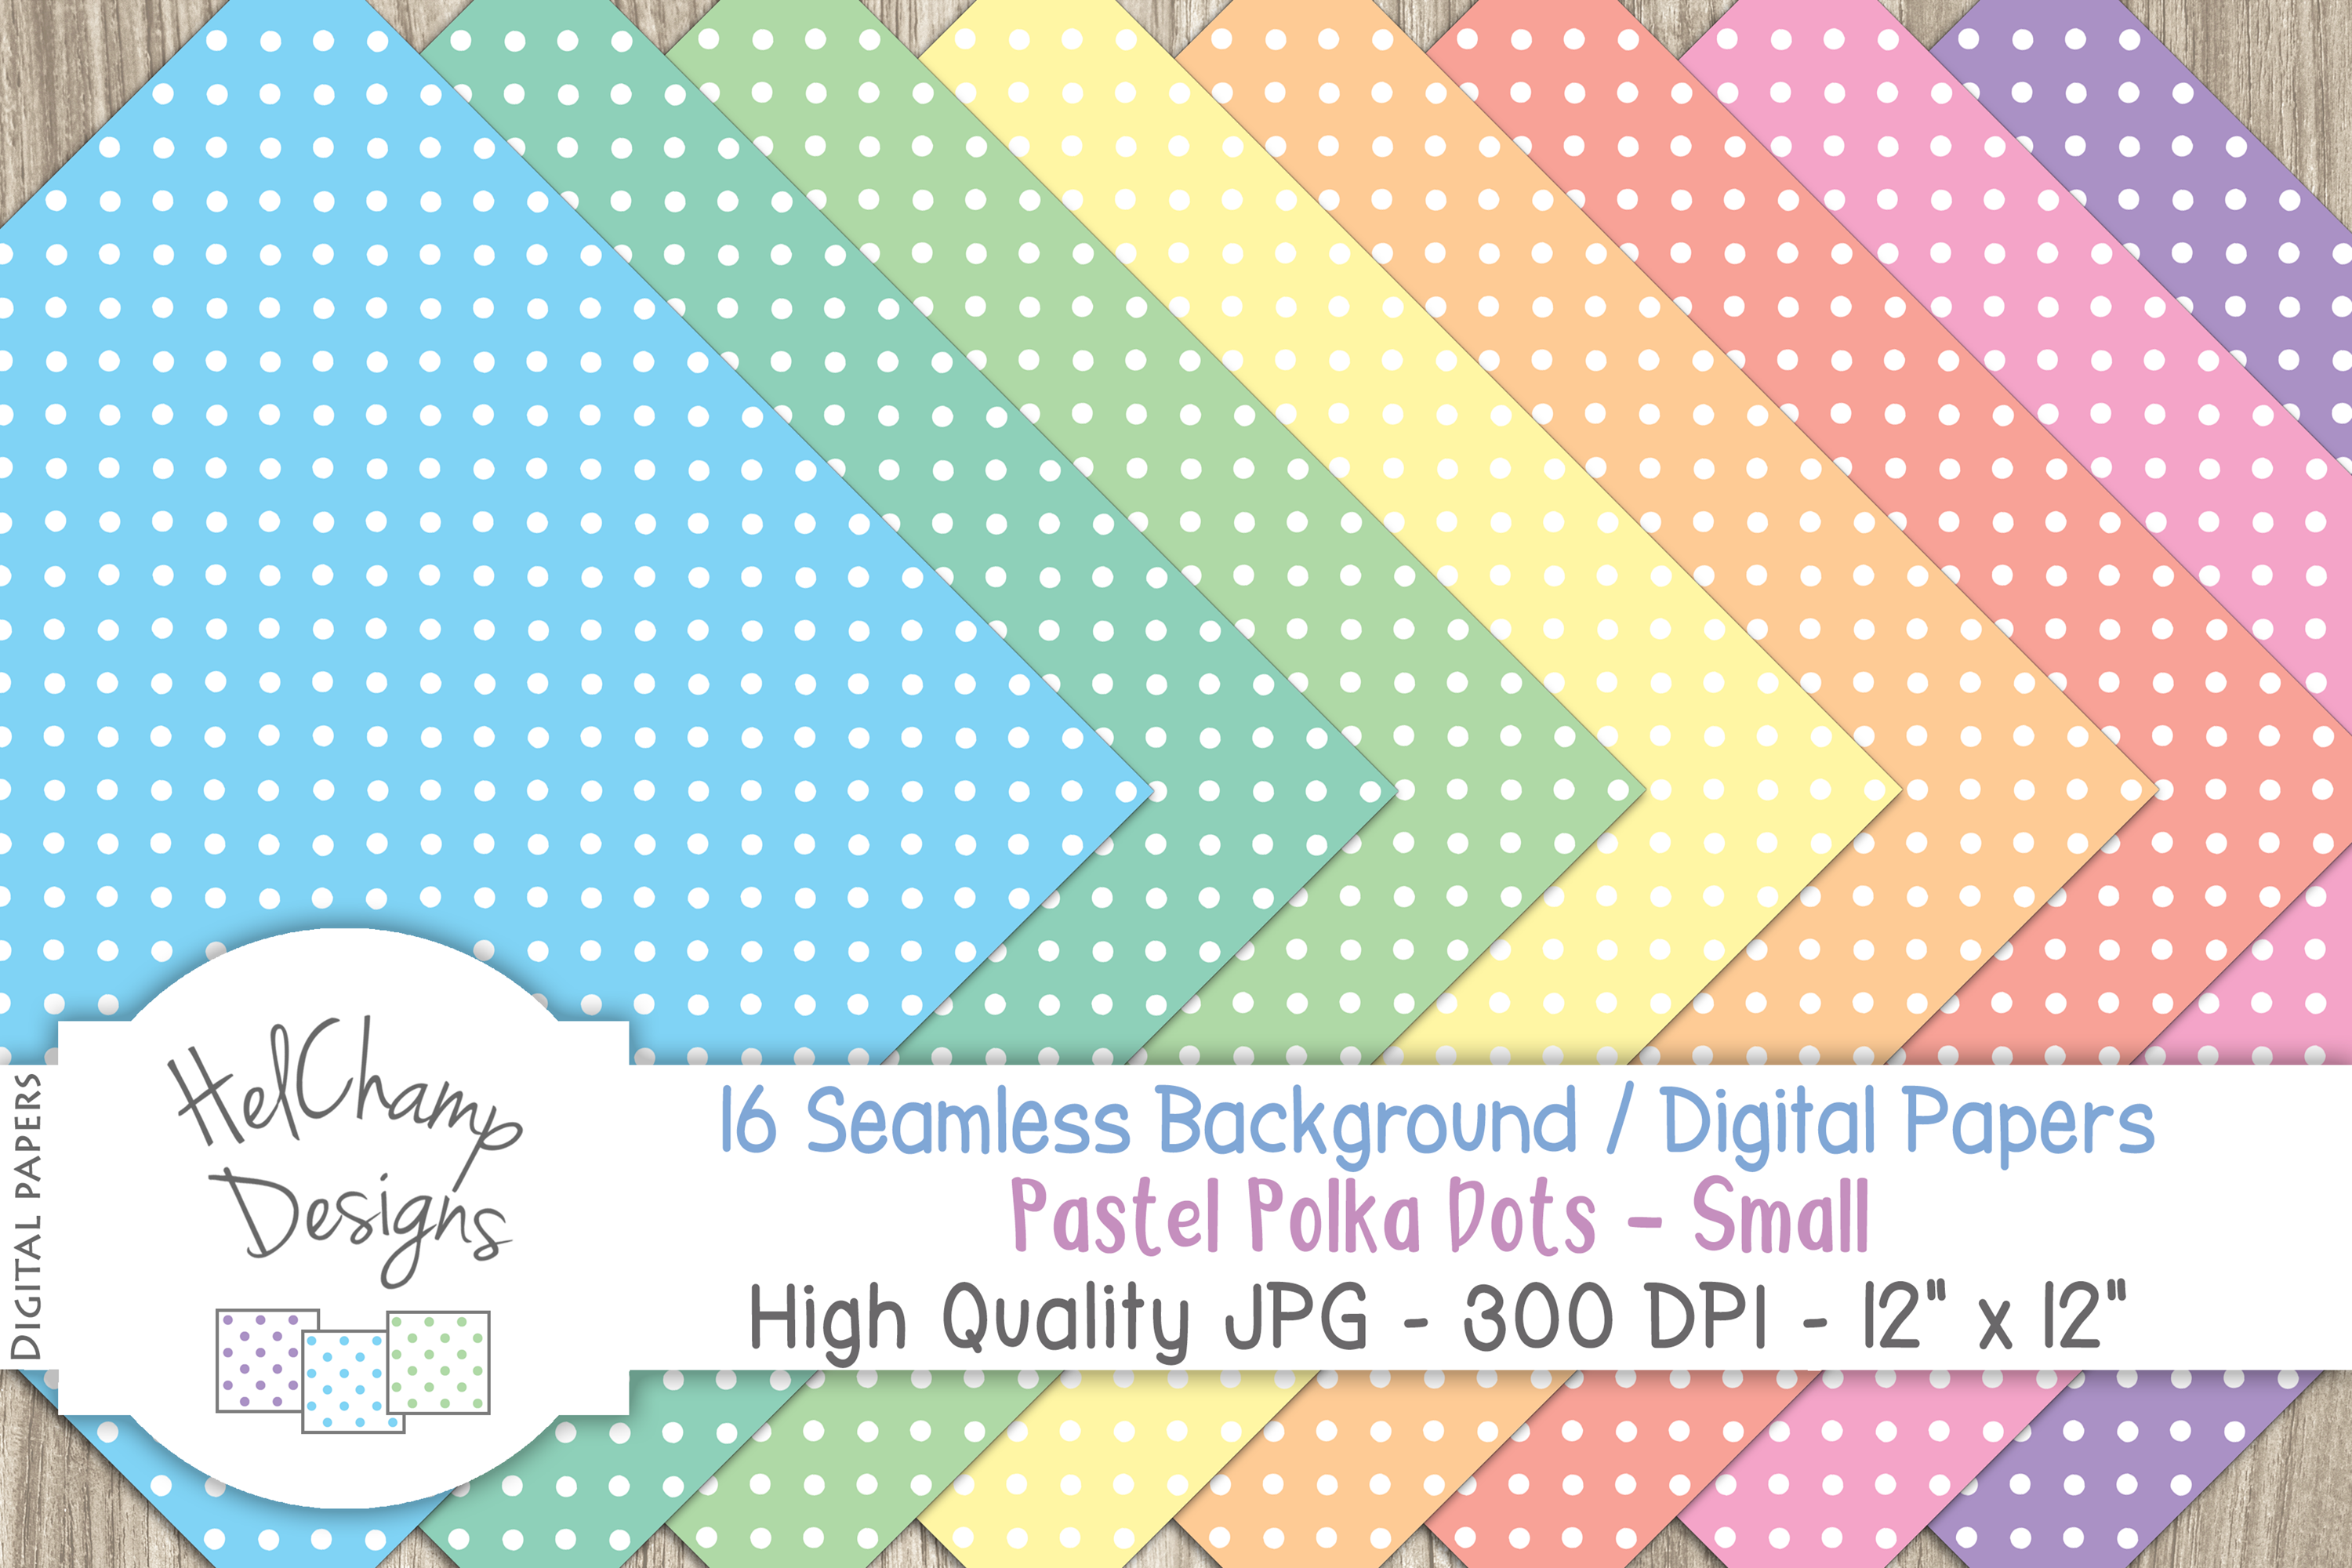 16 seamless Digital Papers - Pastel Polka Dots Small - HC009 example image 4